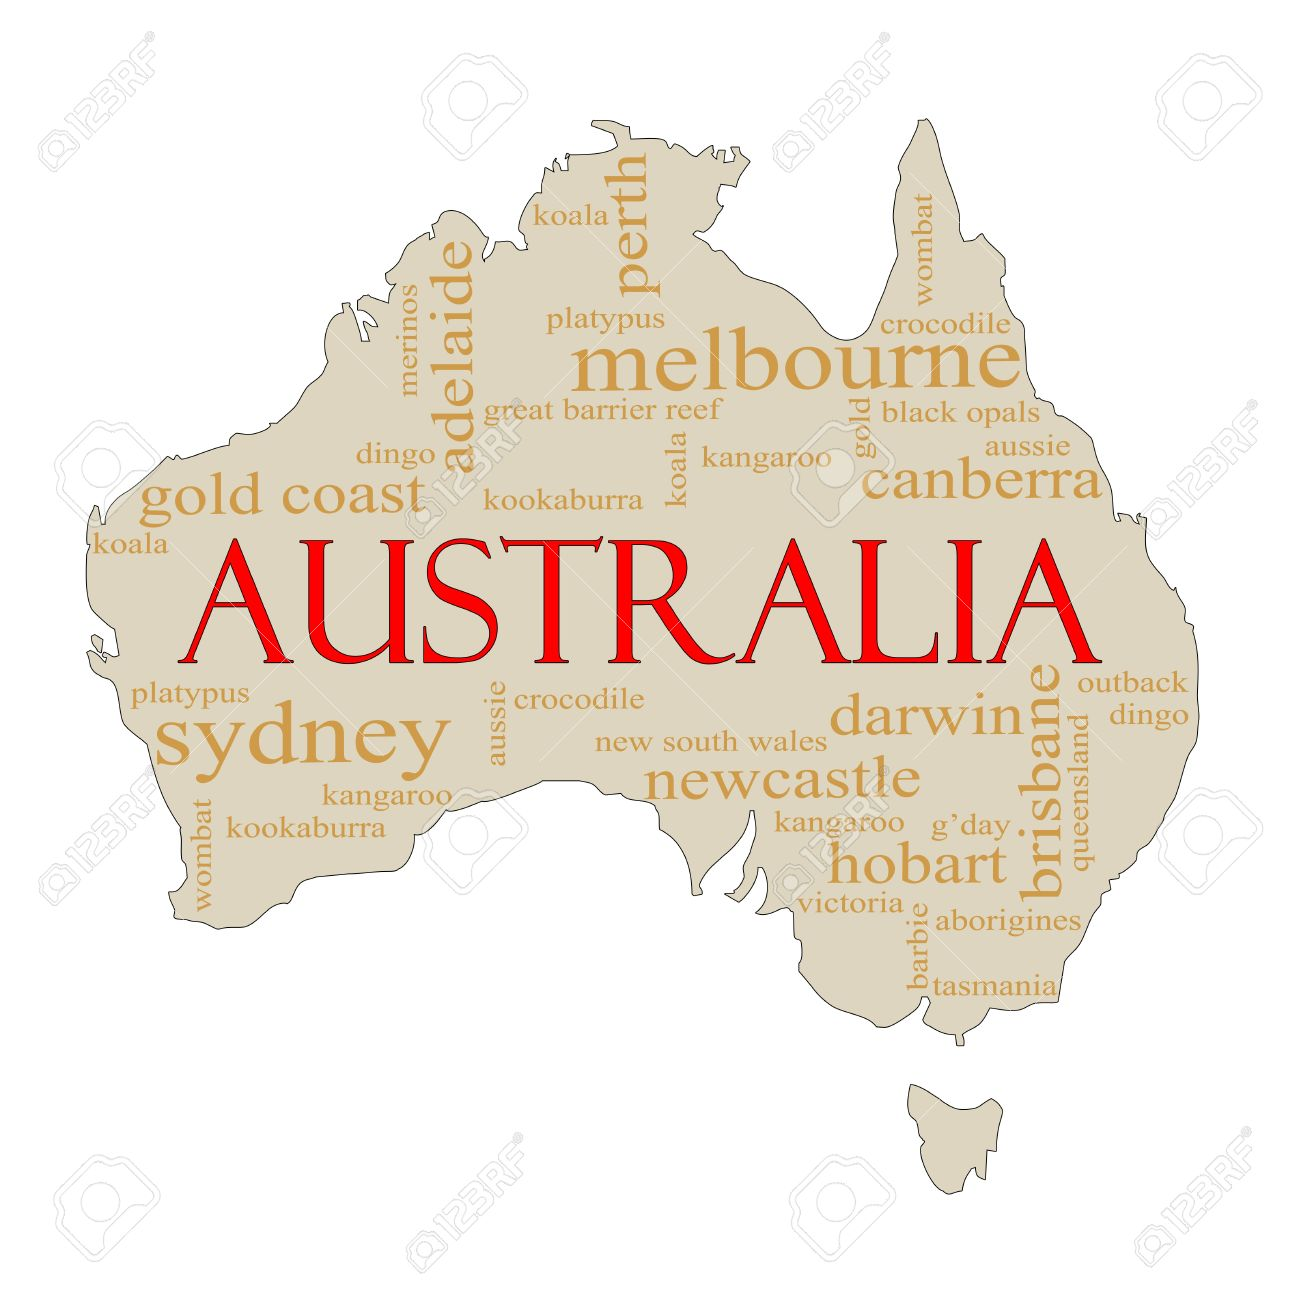 Australia Map Canberra.A Map Of Australia With Different Australian Terms Around It